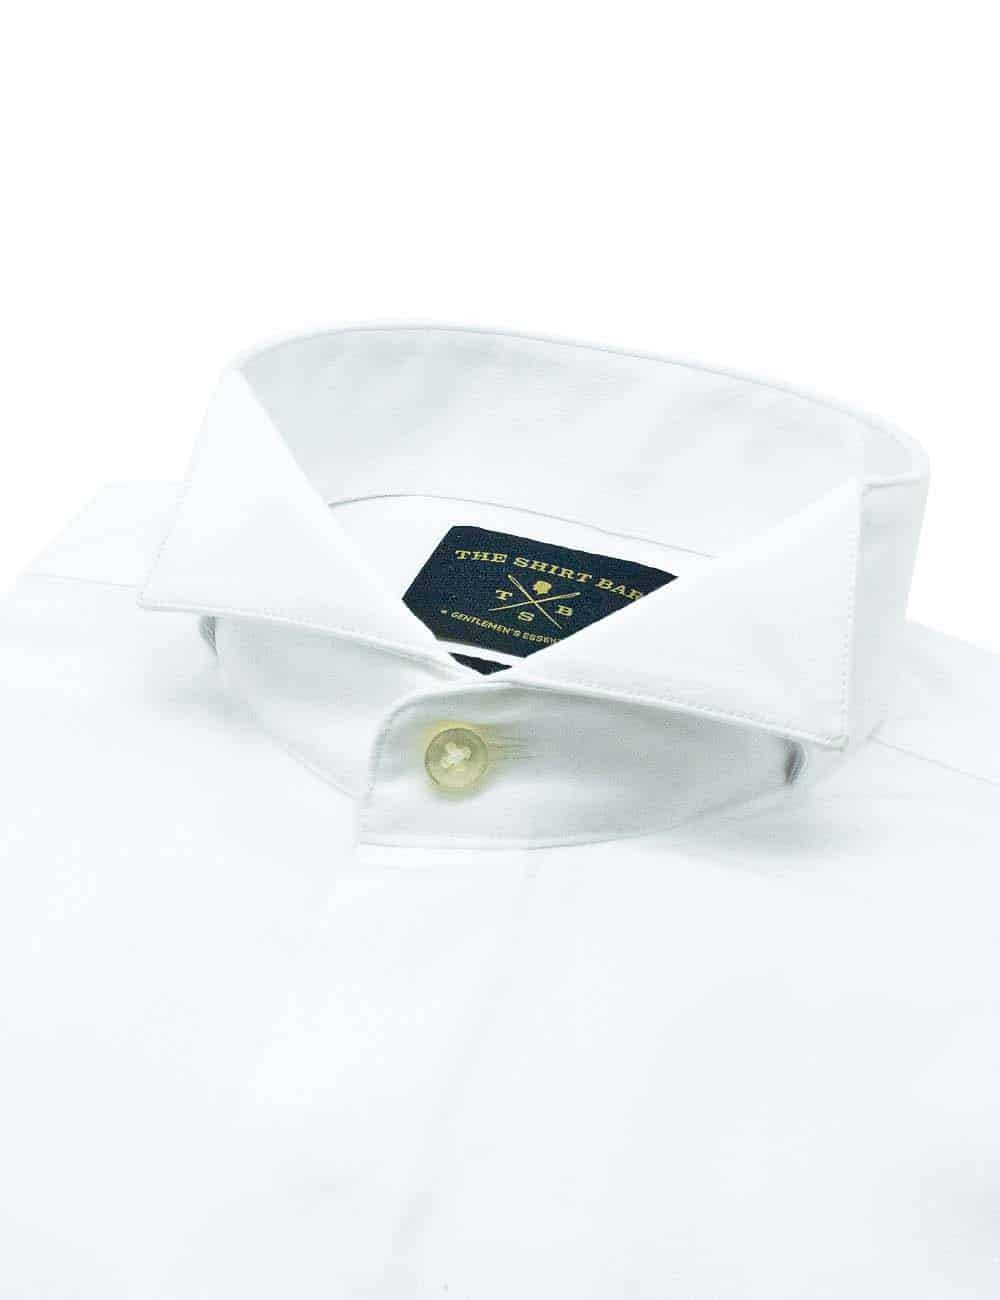 Modern Fit 100% Premium Cotton Solid White Wing Tip with Hidden Buttons Tuxedo Long Sleeve Double Cuff Shirt with Long Lasting White Finishing MF32DT2.NOS